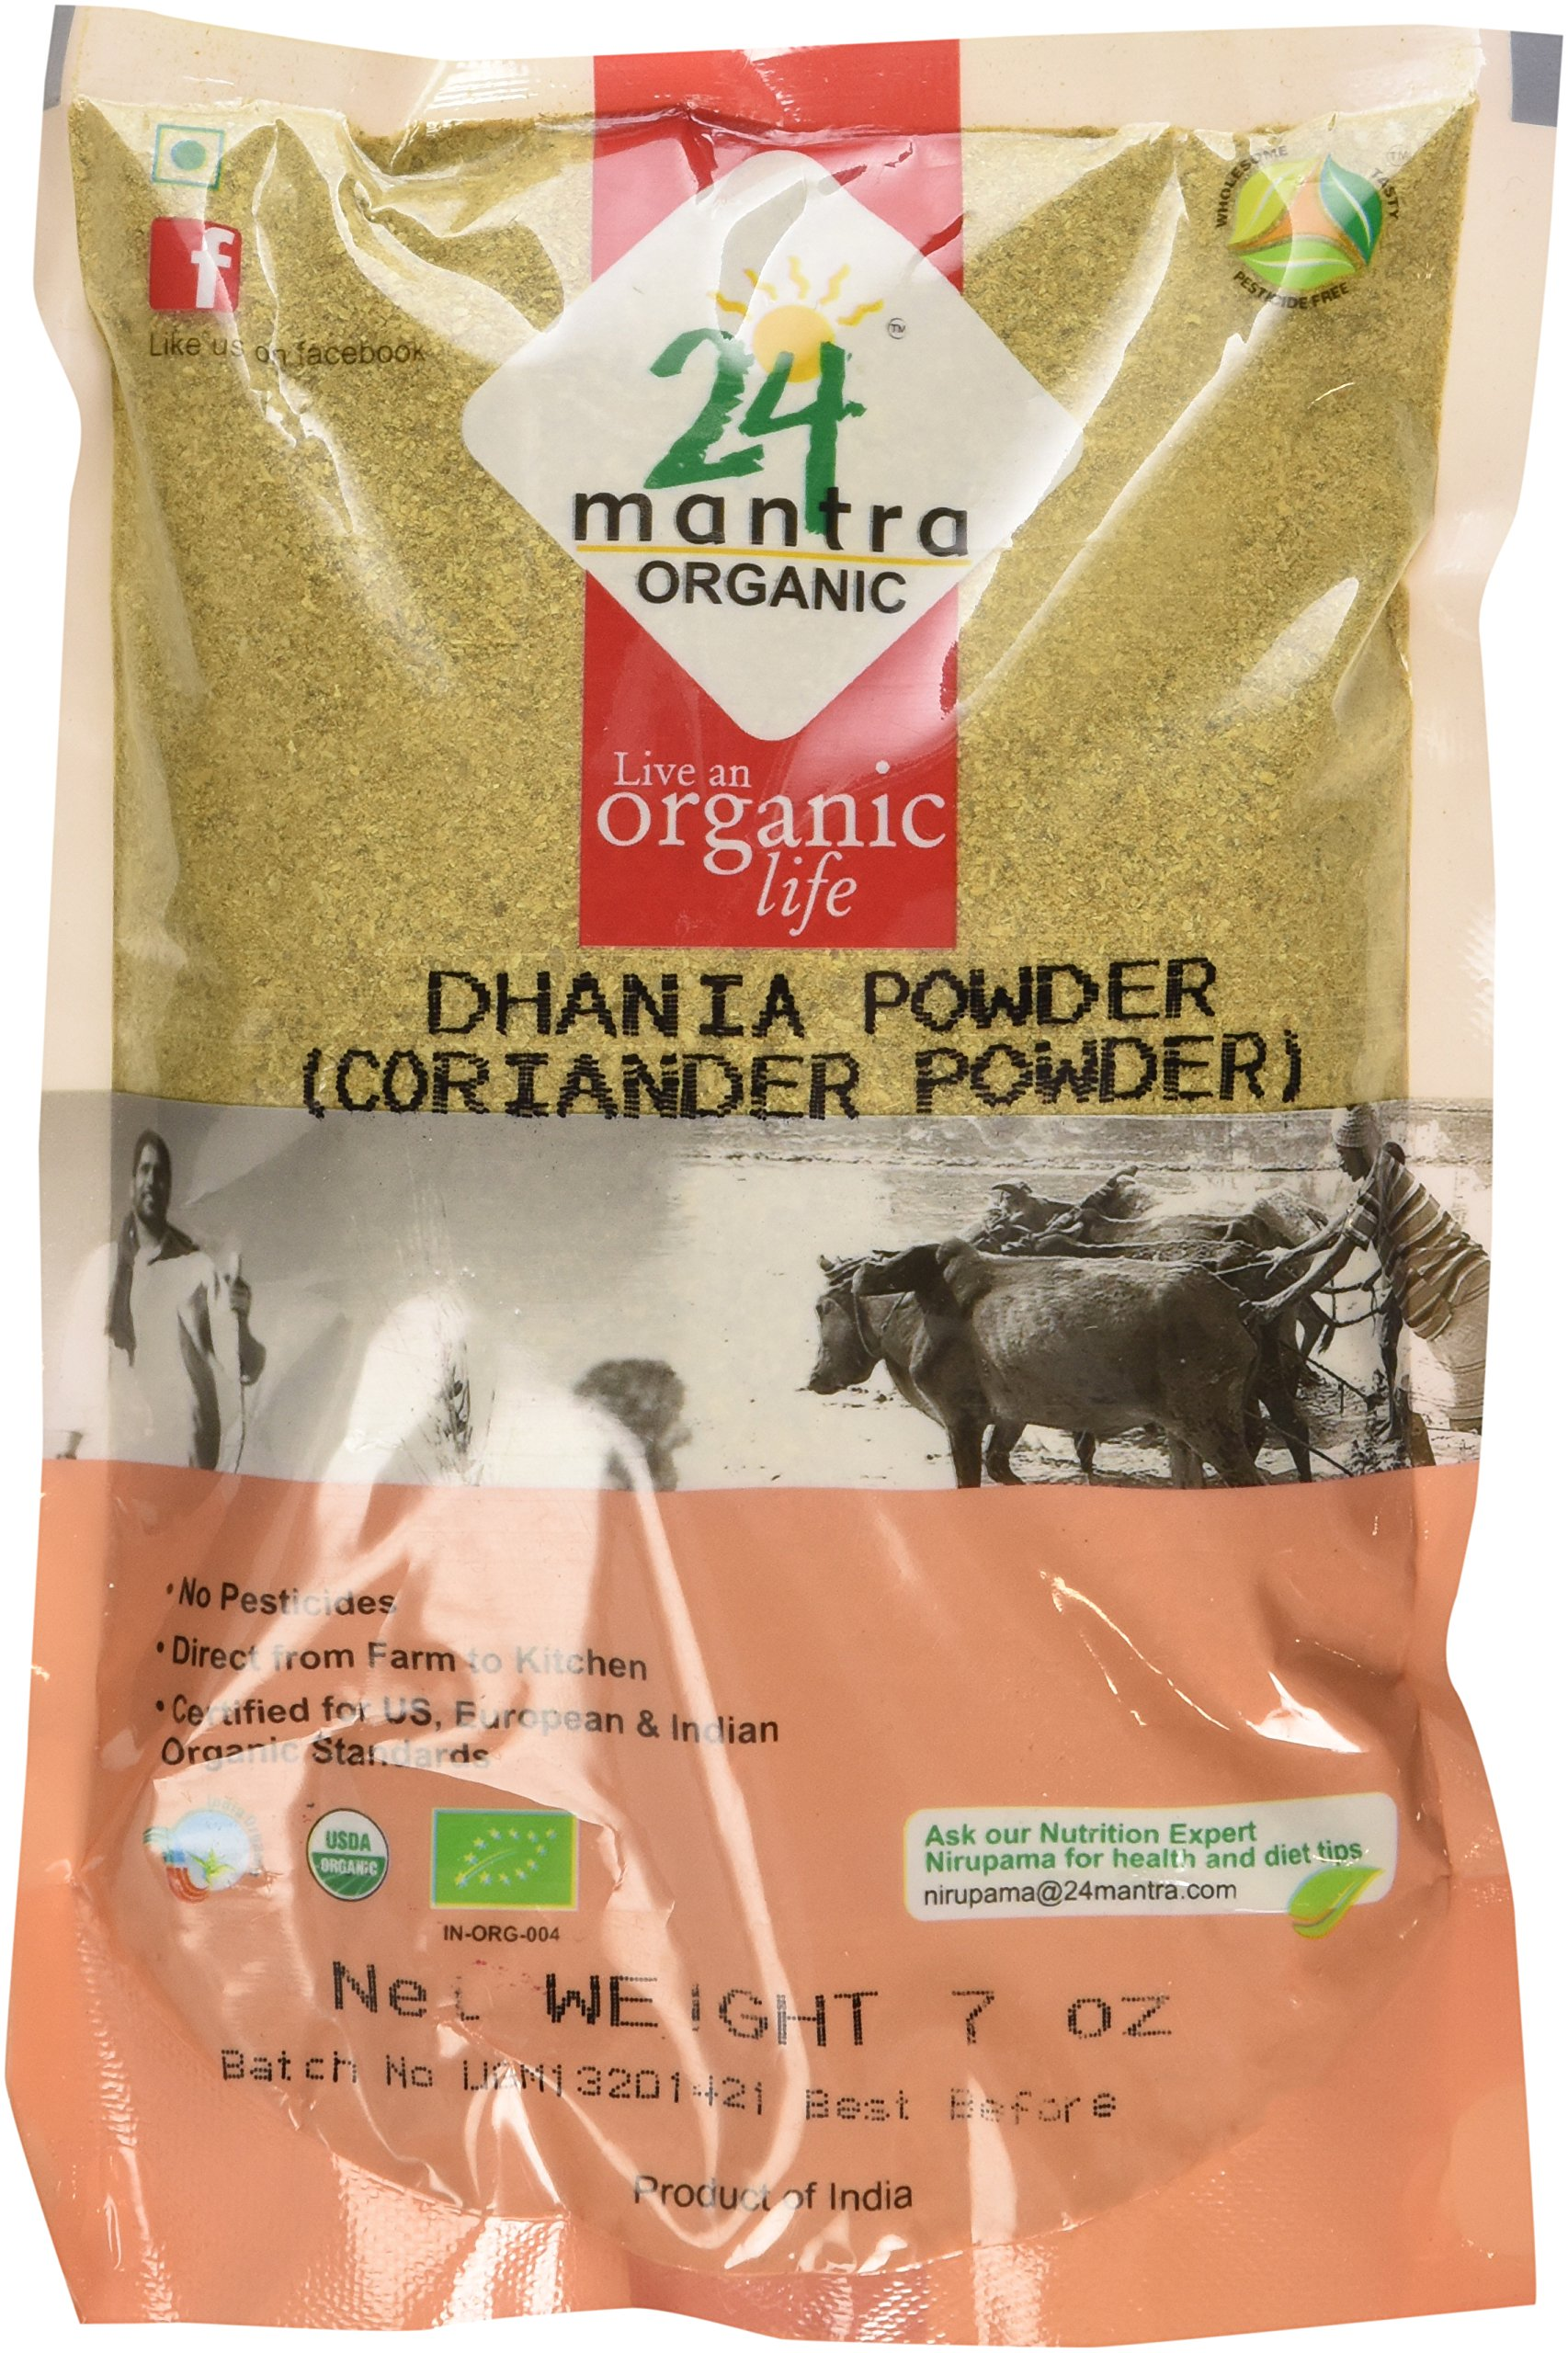 Organic Coriander Powder - Coriander Seeds Powder - ★ USDA Certified Organic - ★ European Union Certified Organic - ★ Pesticides Free - ★ Adulteration Free - ★ Sodium Free - Pack of 3 X 7 Ounces (21 Ounces) - 24 Mantra Organic